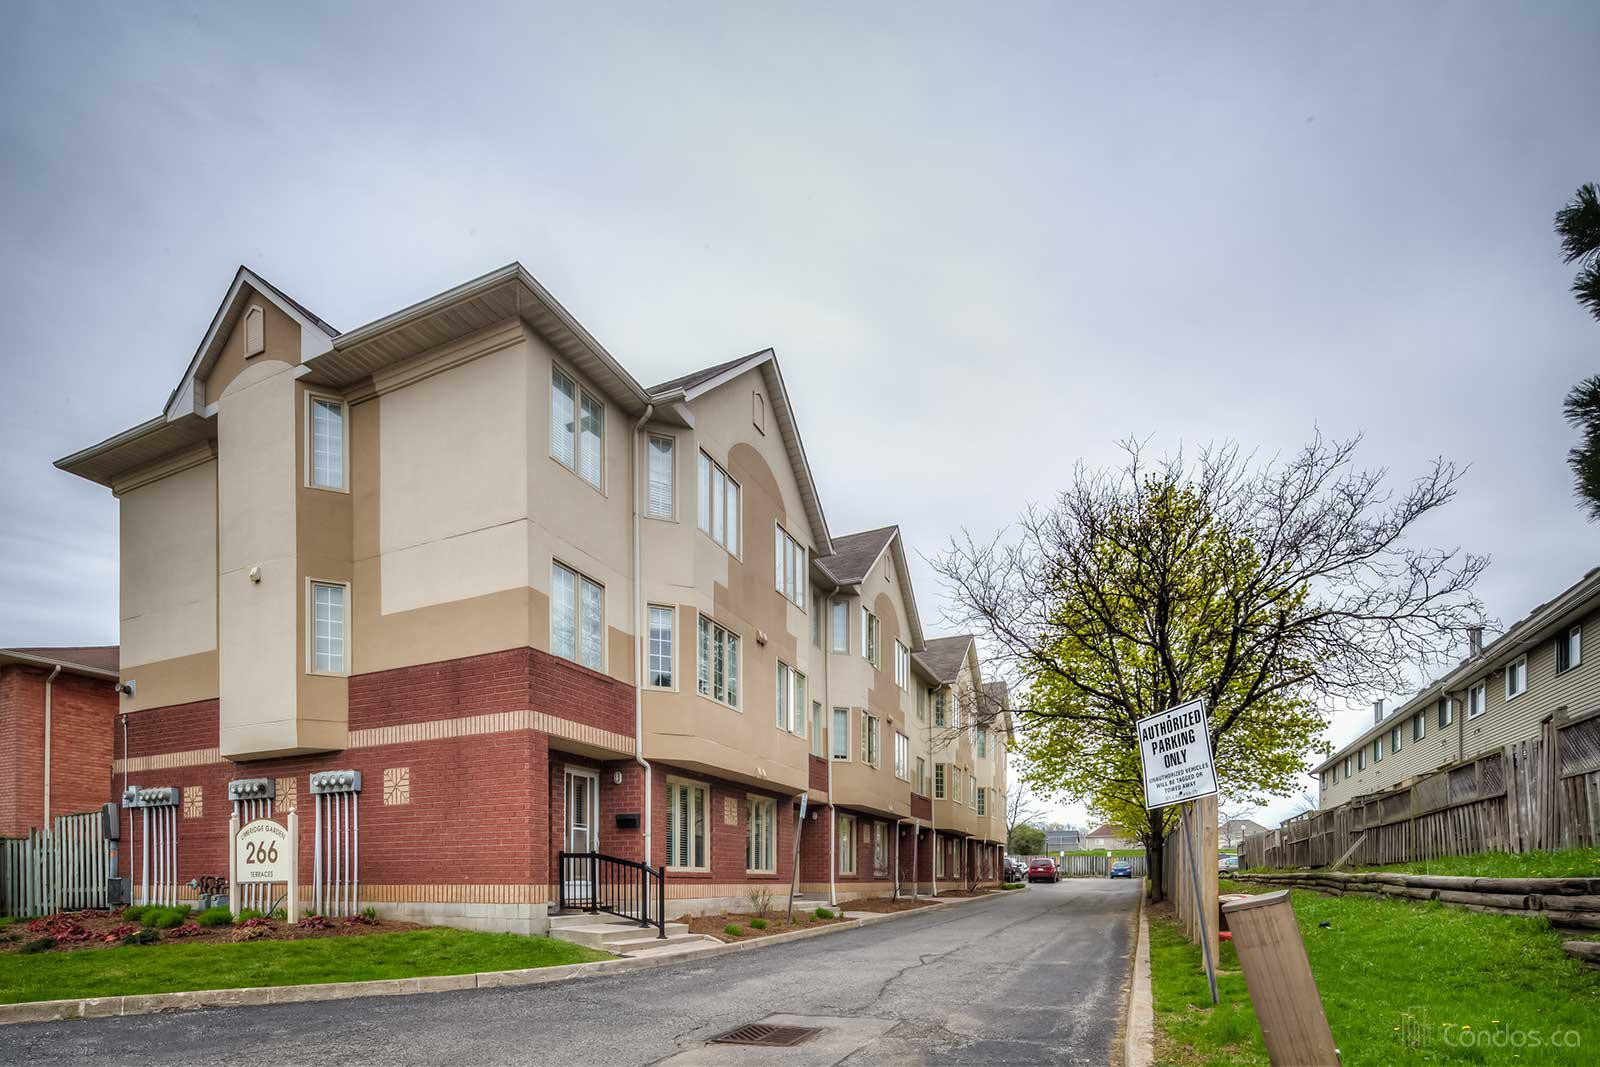 266 Limeridge Condos at 266 Limeridge Rd E, Hamilton City 0